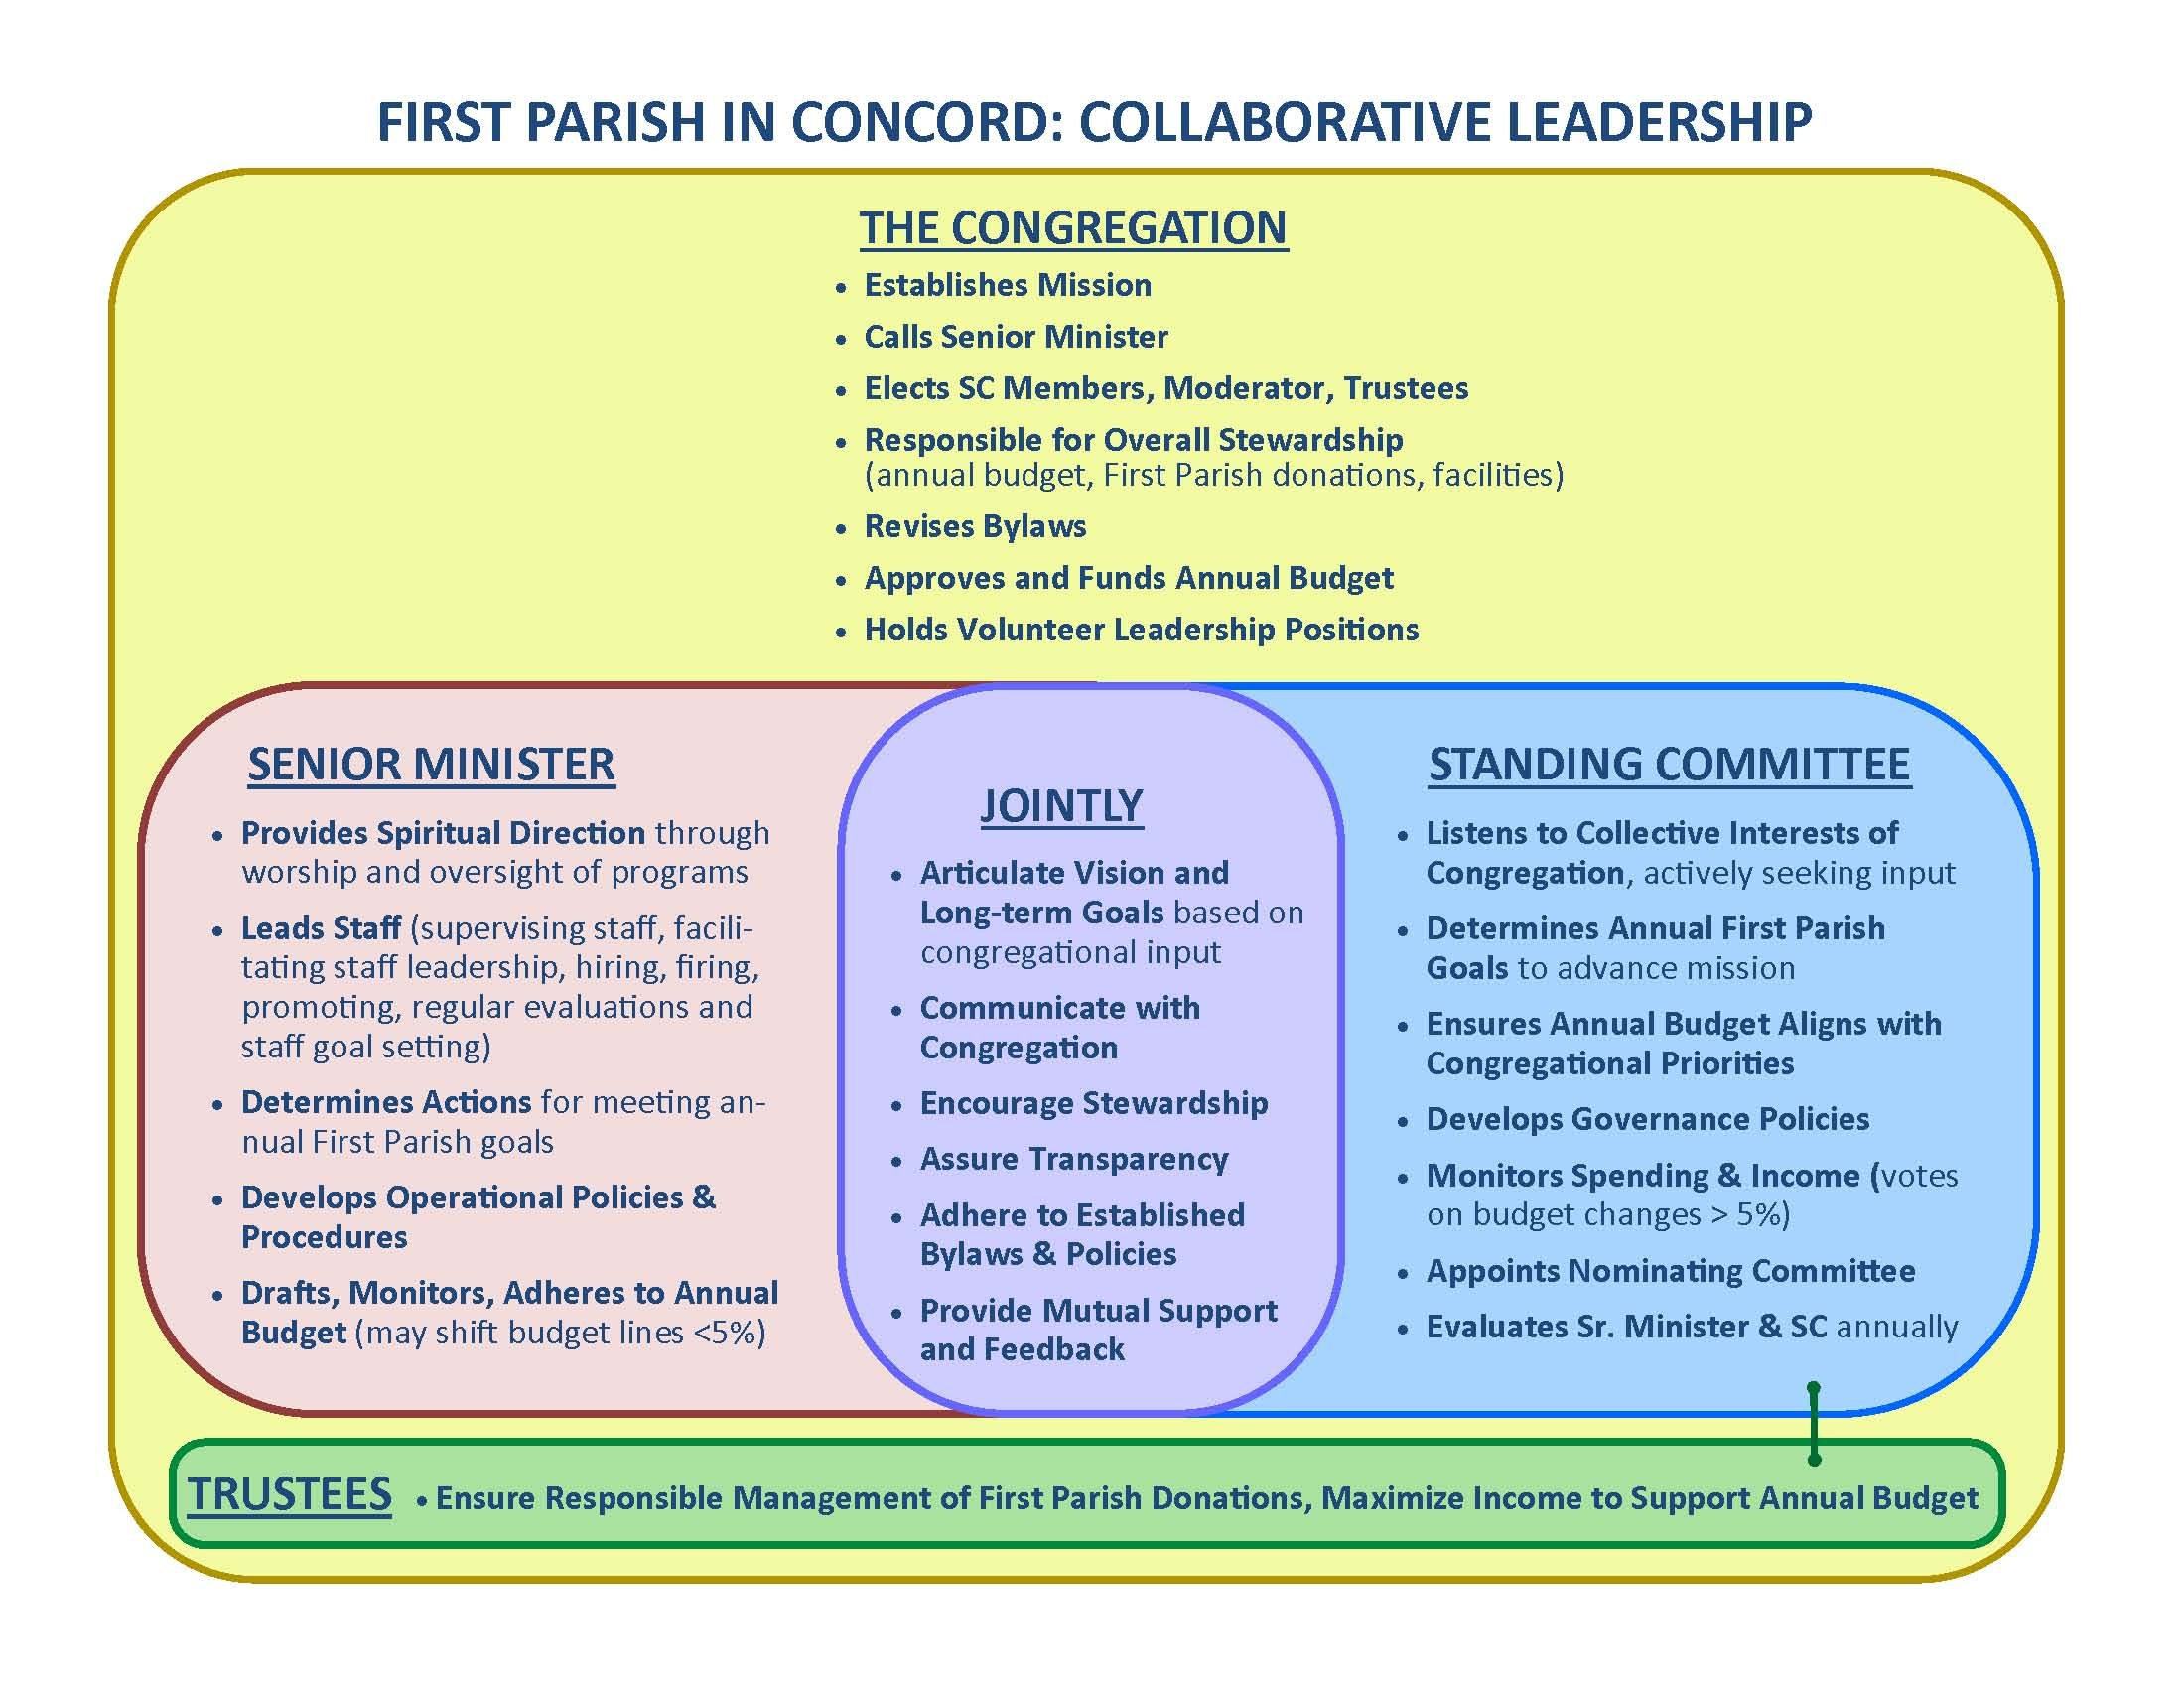 Governance - First Parish in Concord